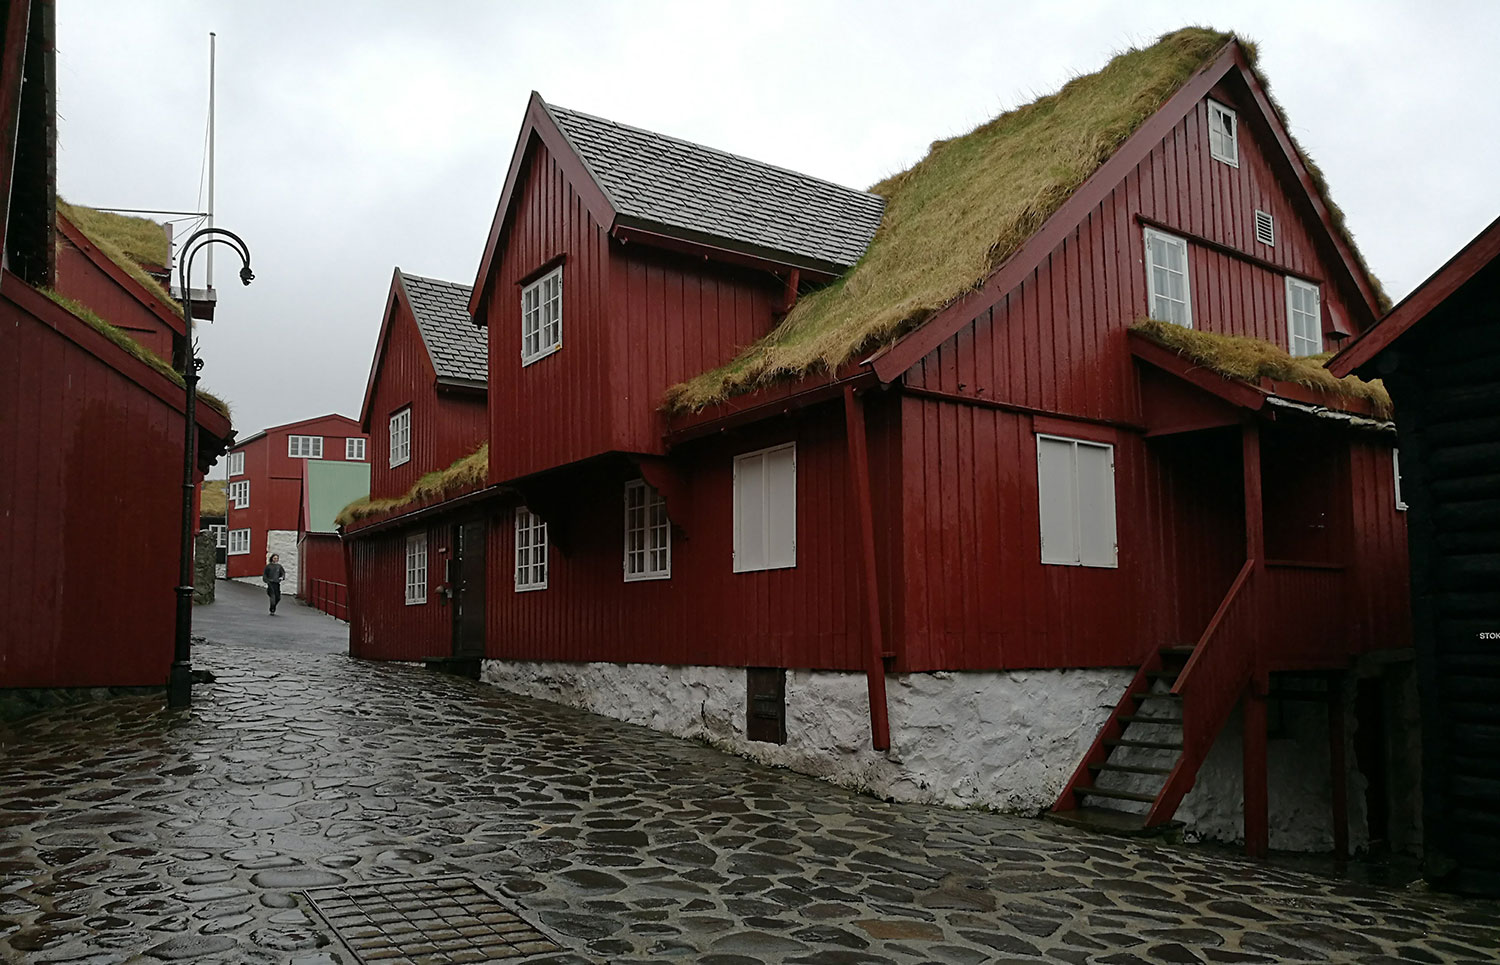 Faroe Island buildings